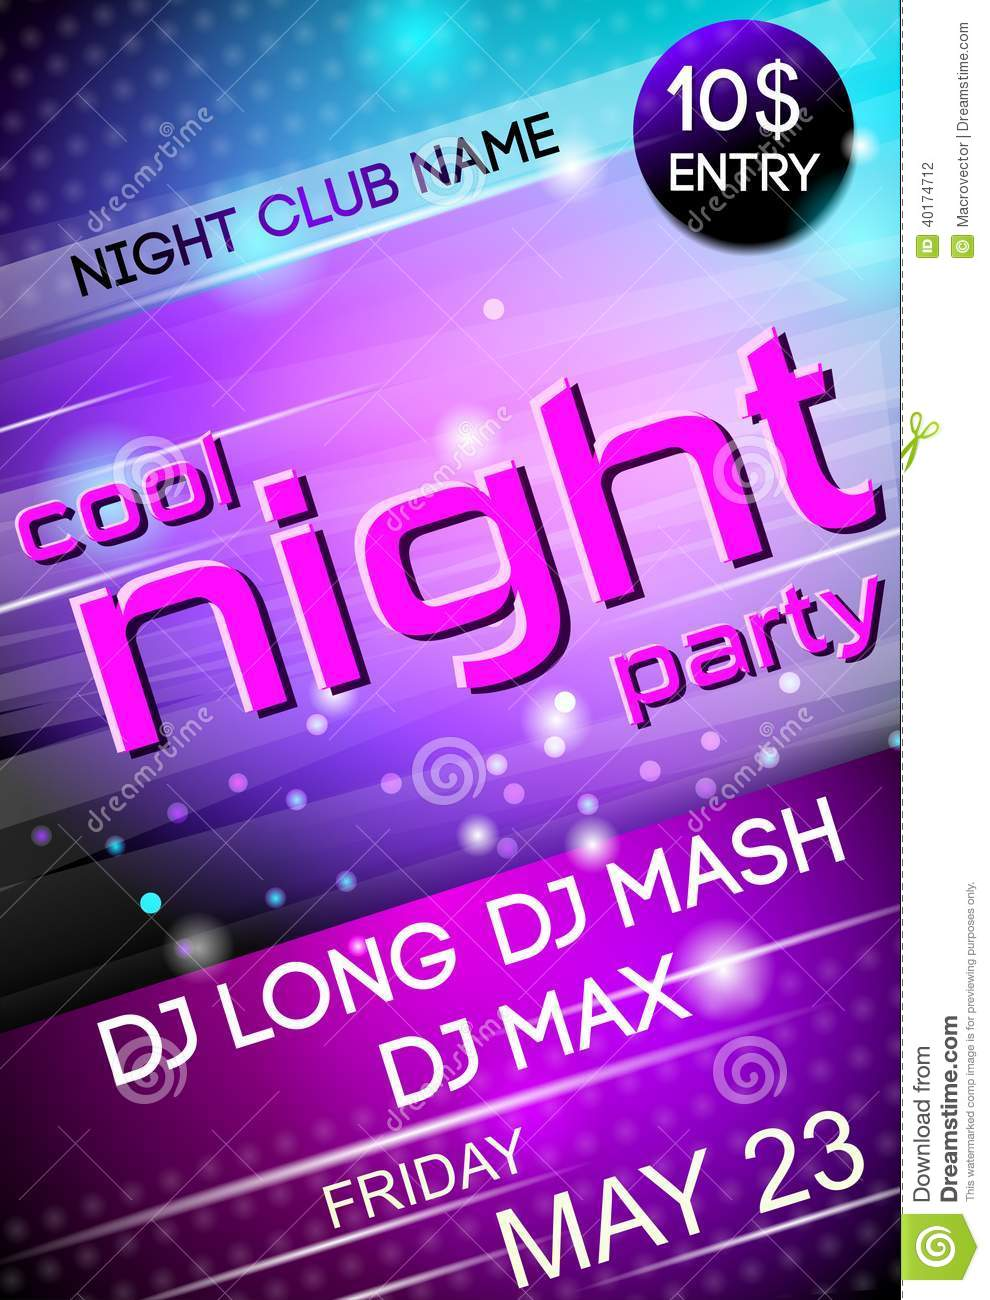 Night Party Poster Stock Vector - Image: 40174712